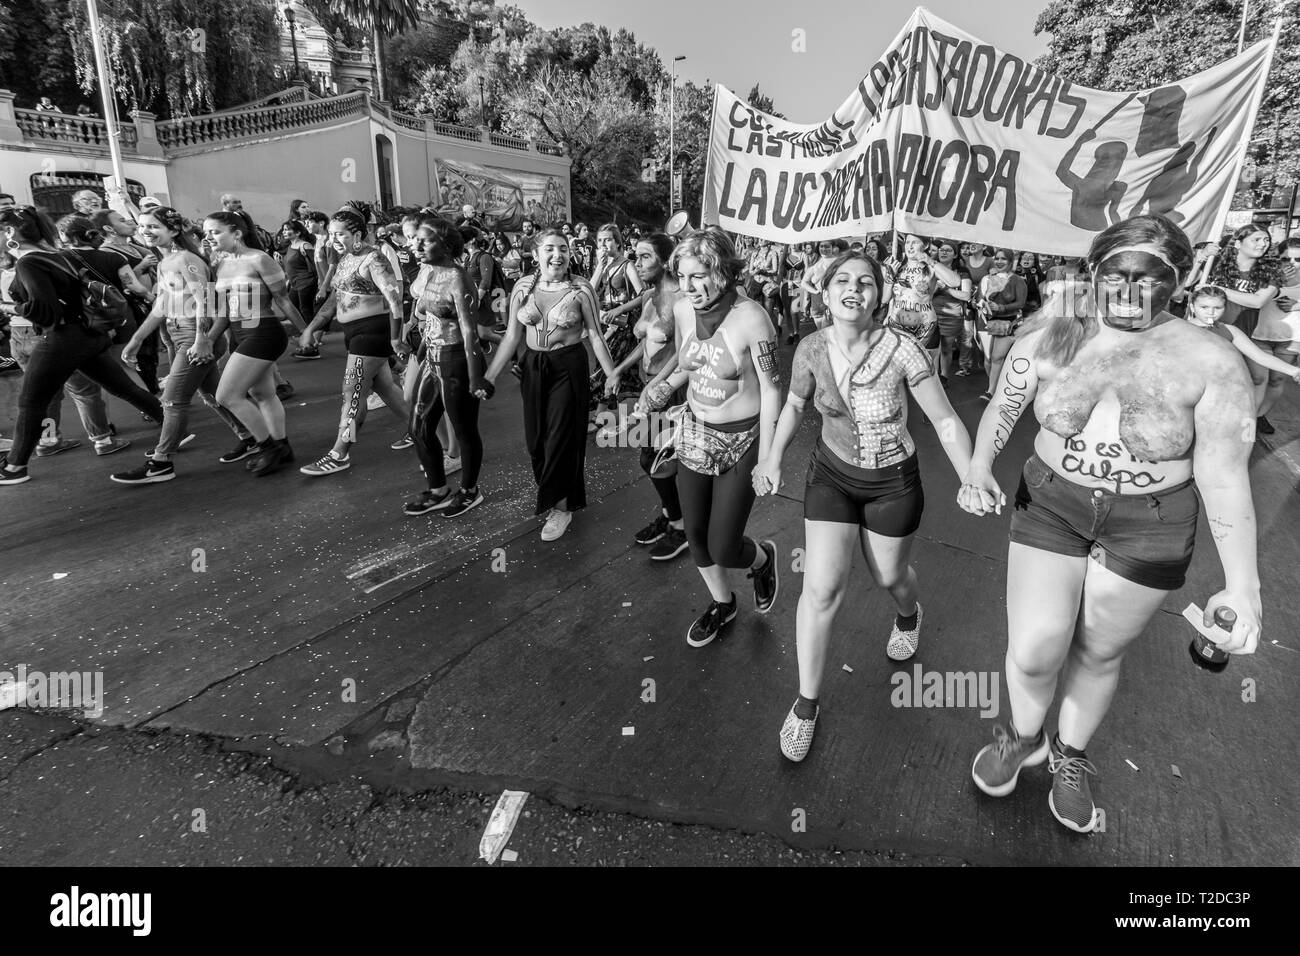 A view of Santiago city center streets during the women's day demonstration. People carrying protester signs during Women`s Day 8M - Stock Image